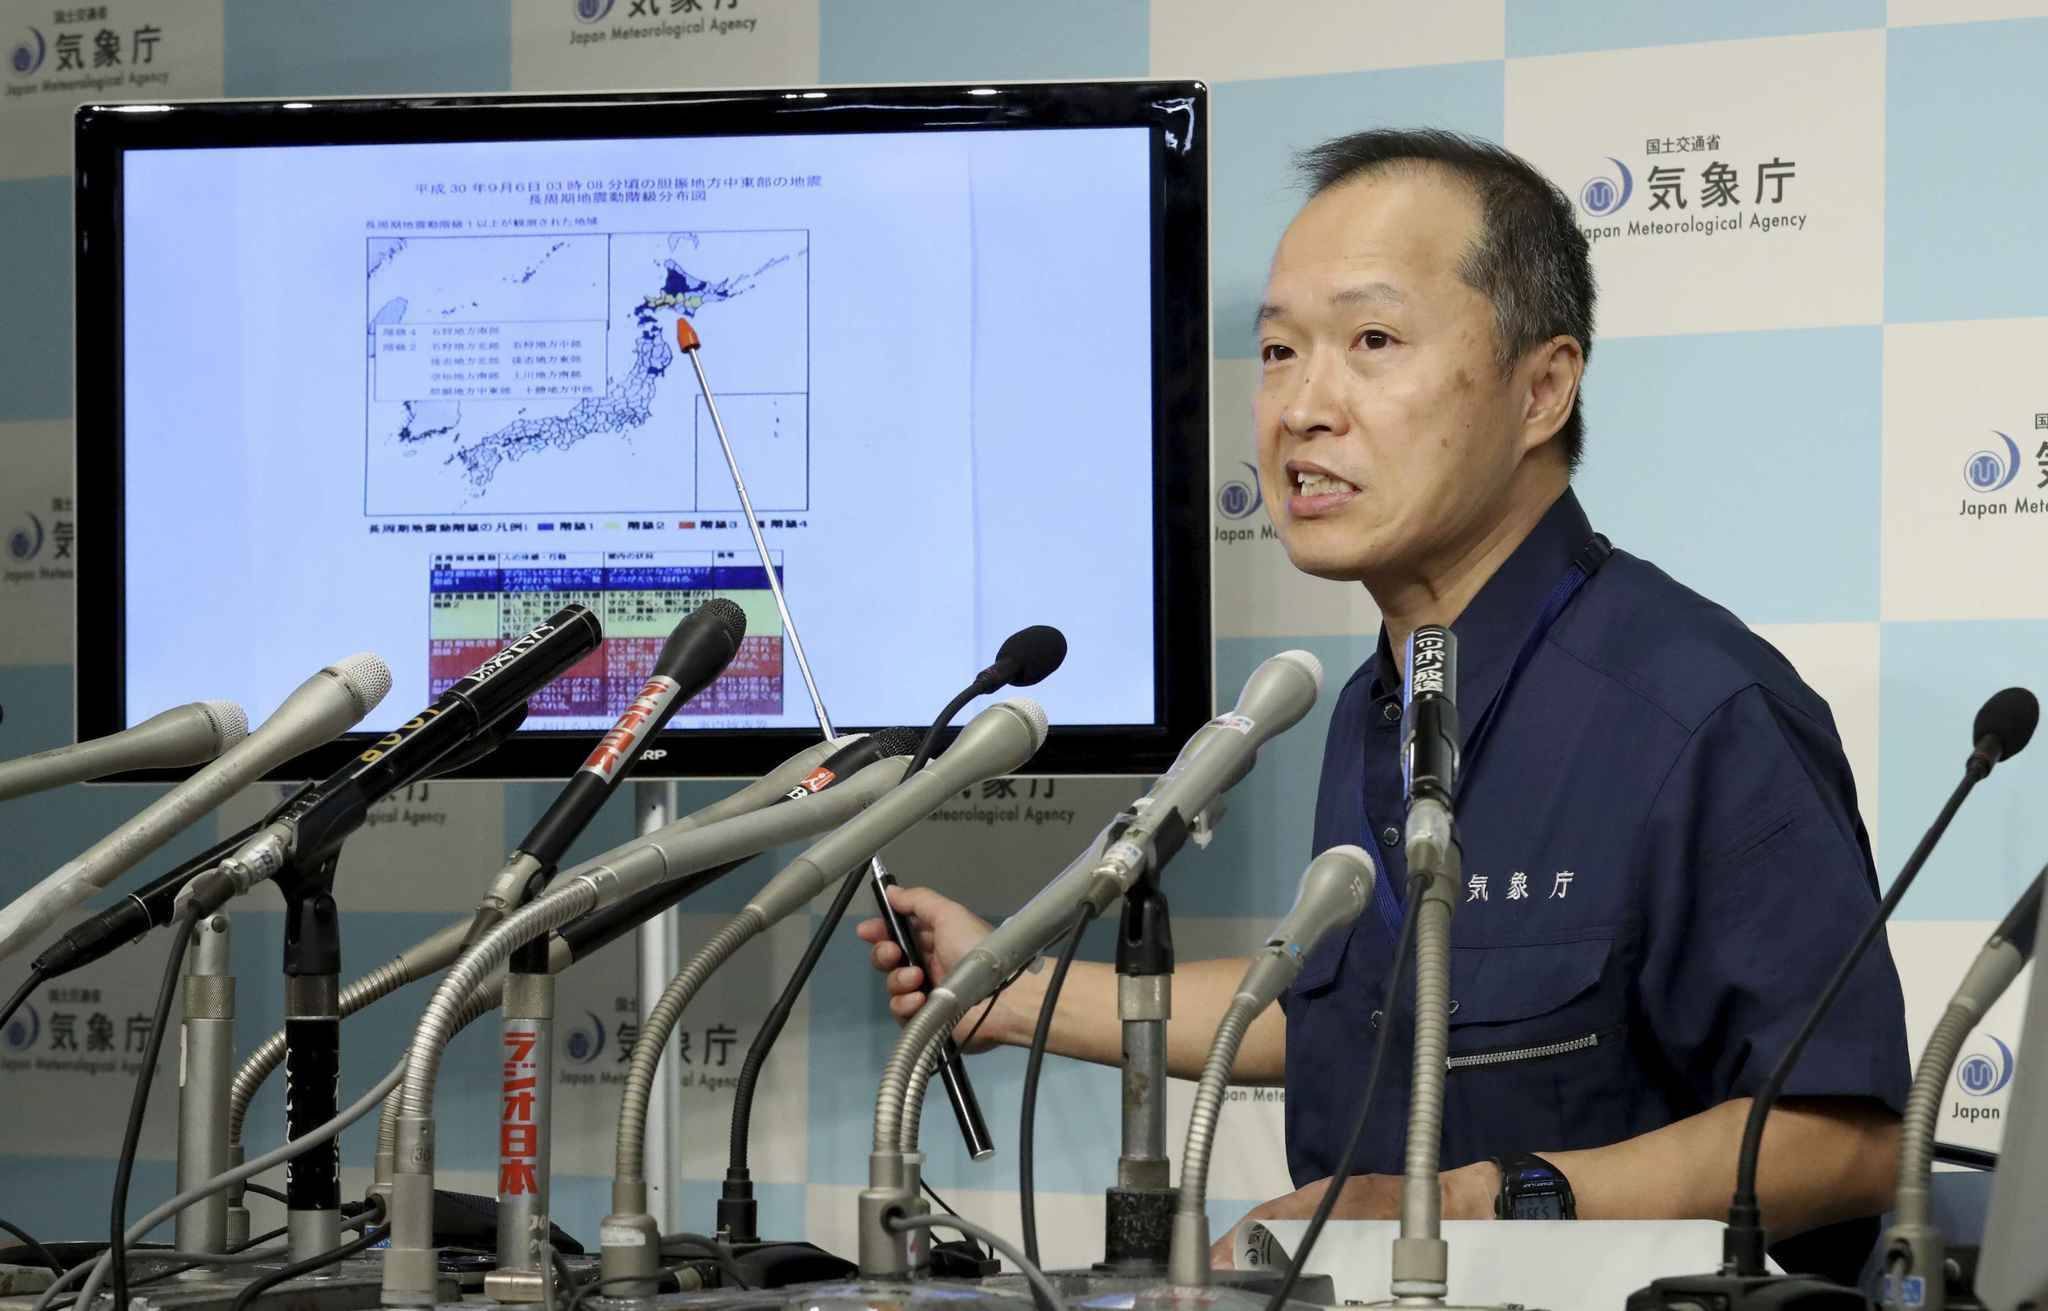 Toshiyuki MATSUMORI,Japan Meteorological Agency's Earthquake and Tsunami Observation Division Seismology and Volcanology Department Director, speaks during a press conference in Tokyo on sep.6, 2018. Powerful Magnitude 6.7 quake struck Iburi district of Hokkaido on the same day 3 A.M.